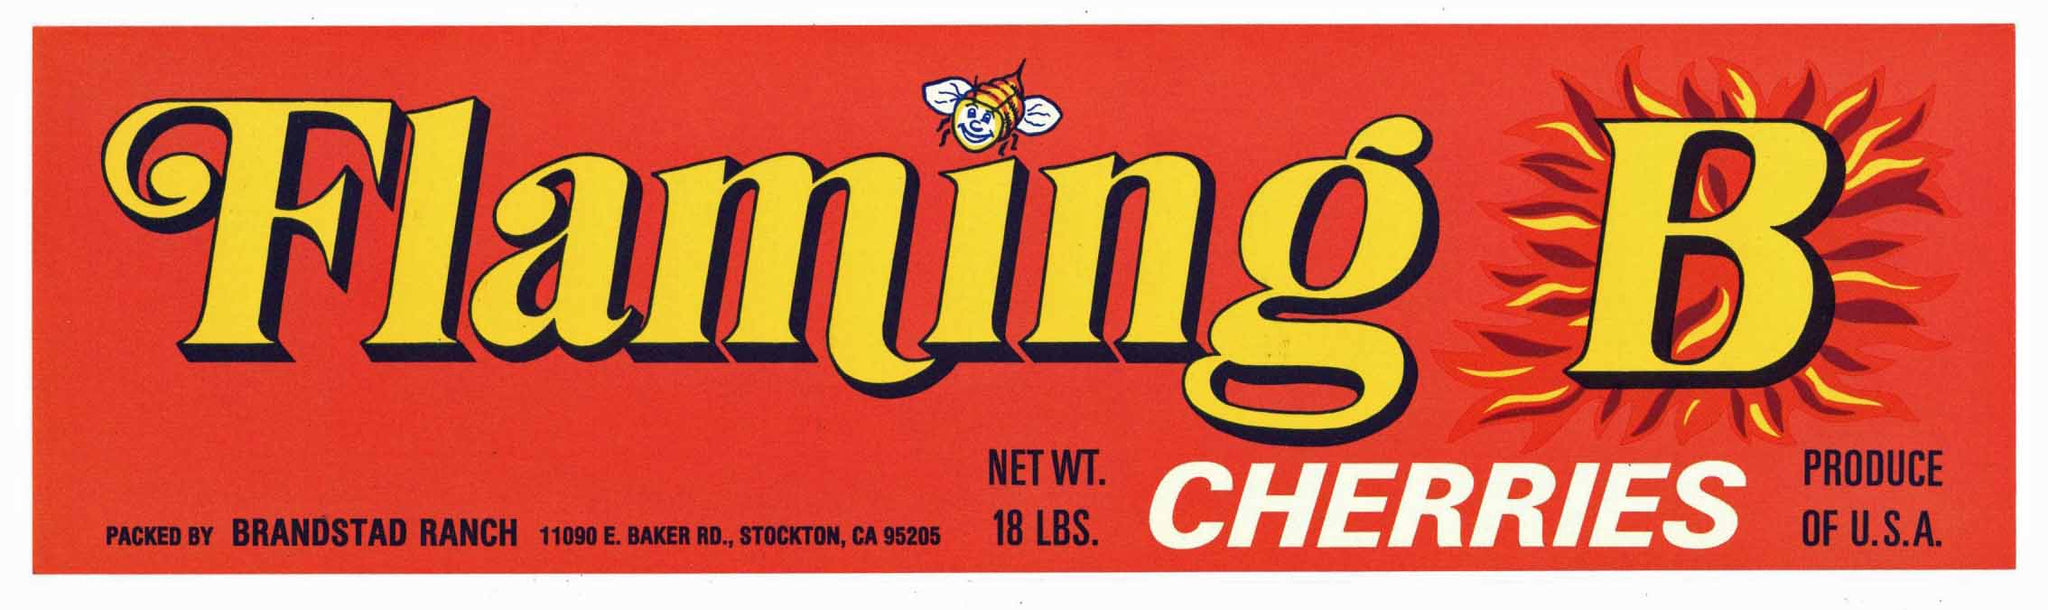 Flaming B Brand Vintage Stockton Cherry Crate Label